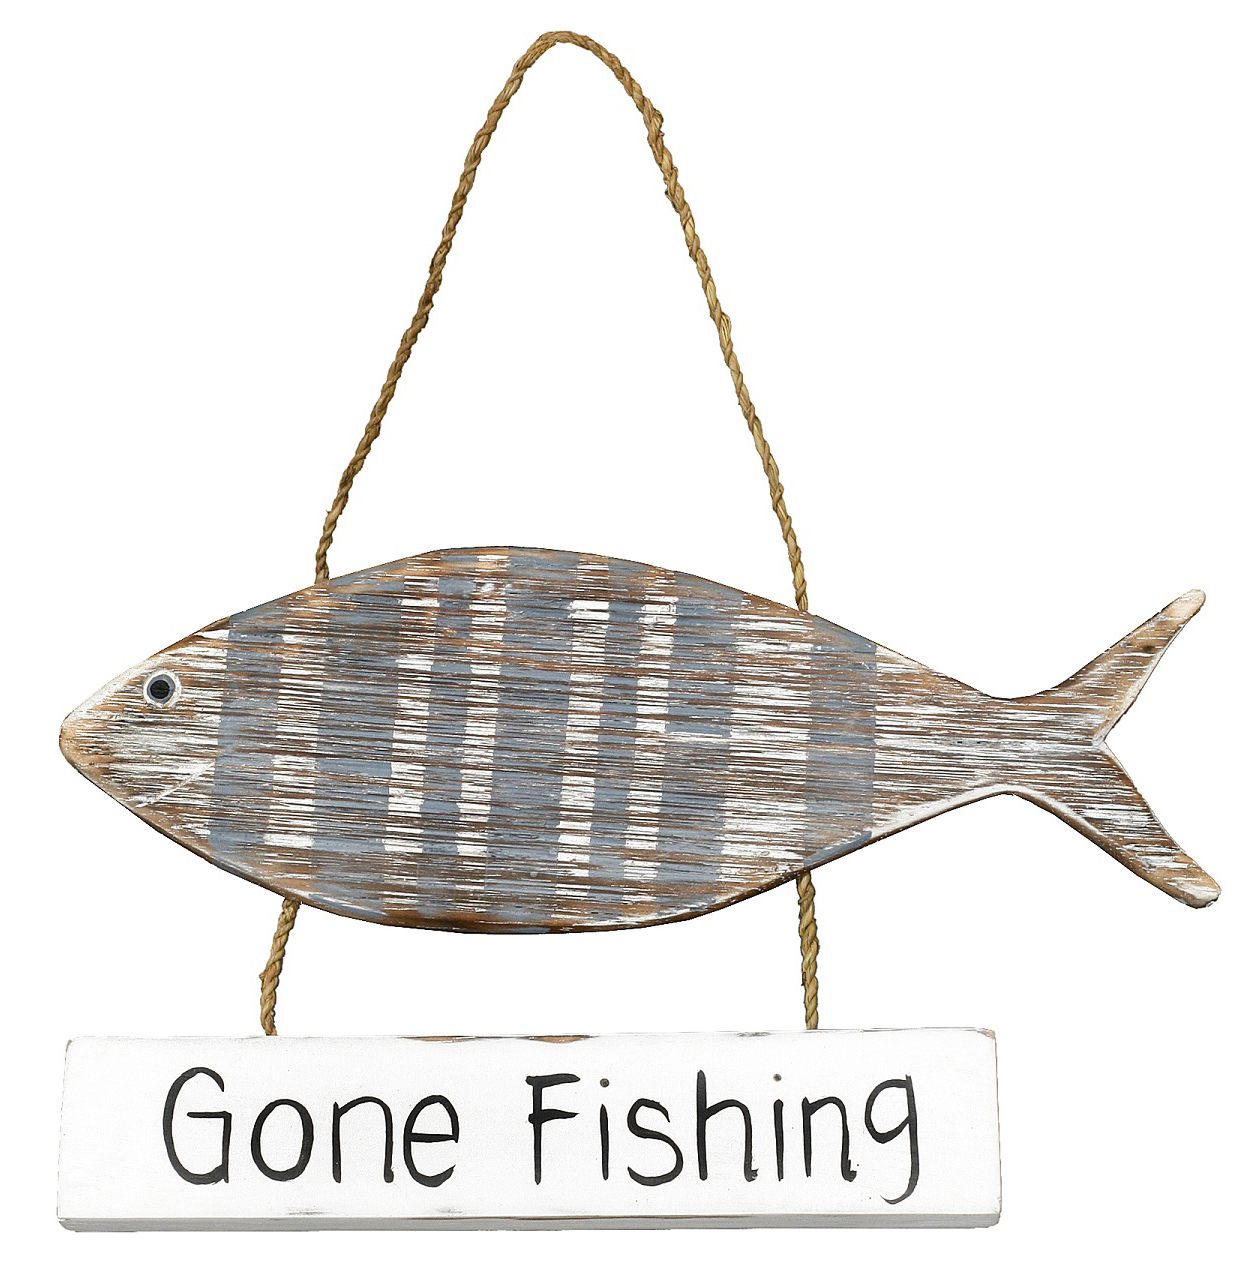 Gone Fishing Hanger